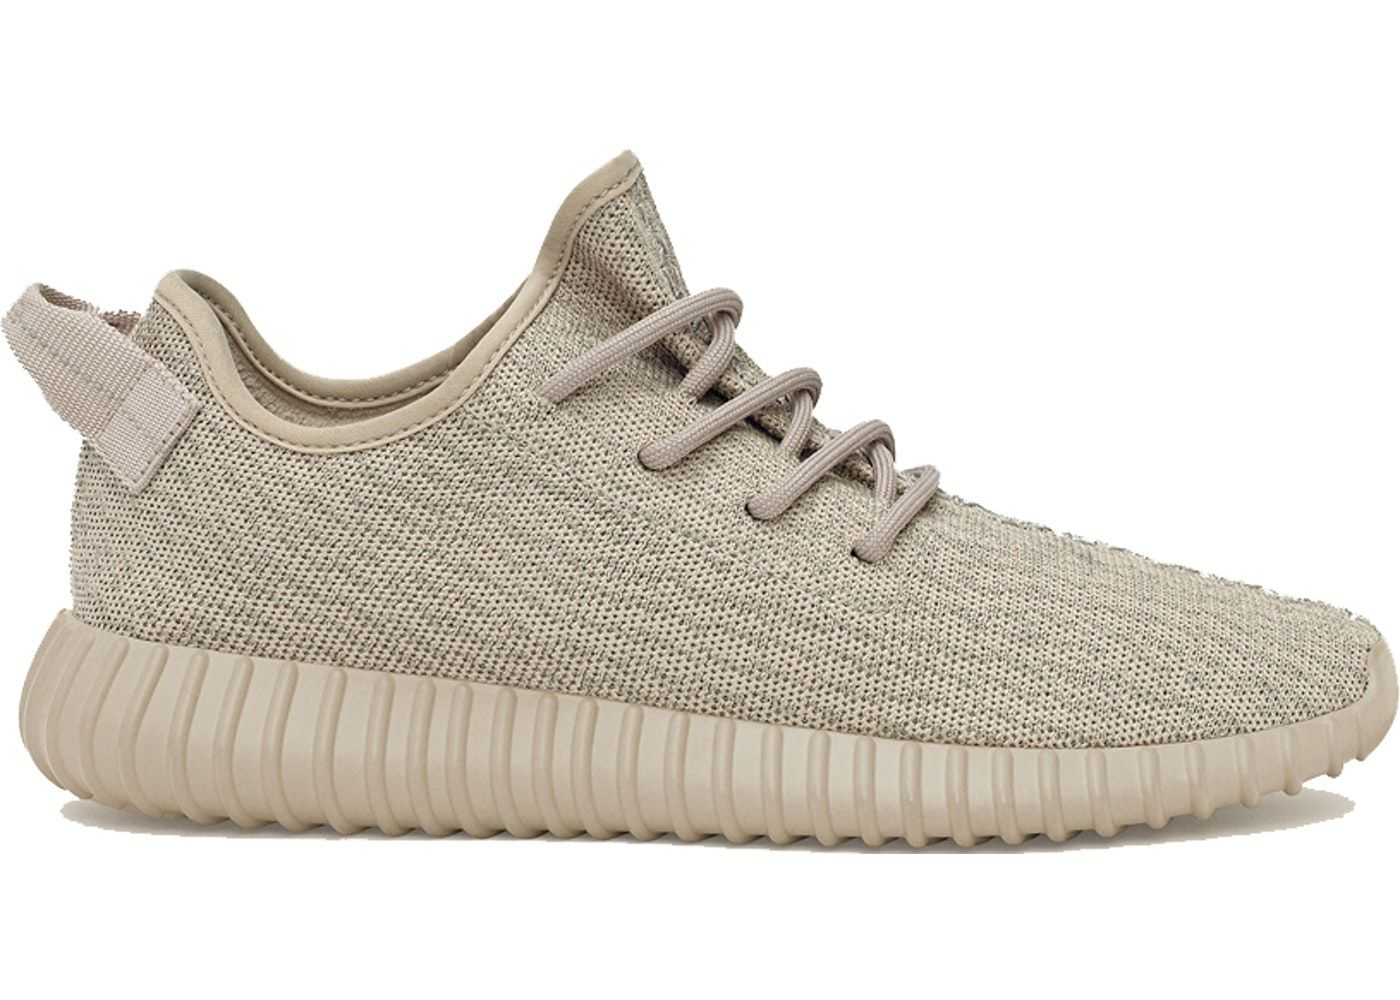 Buy New Arrival Authentic Adidas Yeezy 350 Boost Light Stone/Oxford Tan-Light  Stone(Men Women) from Reliable New Arrival Authentic Adidas Yeezy 350 Boost  ...